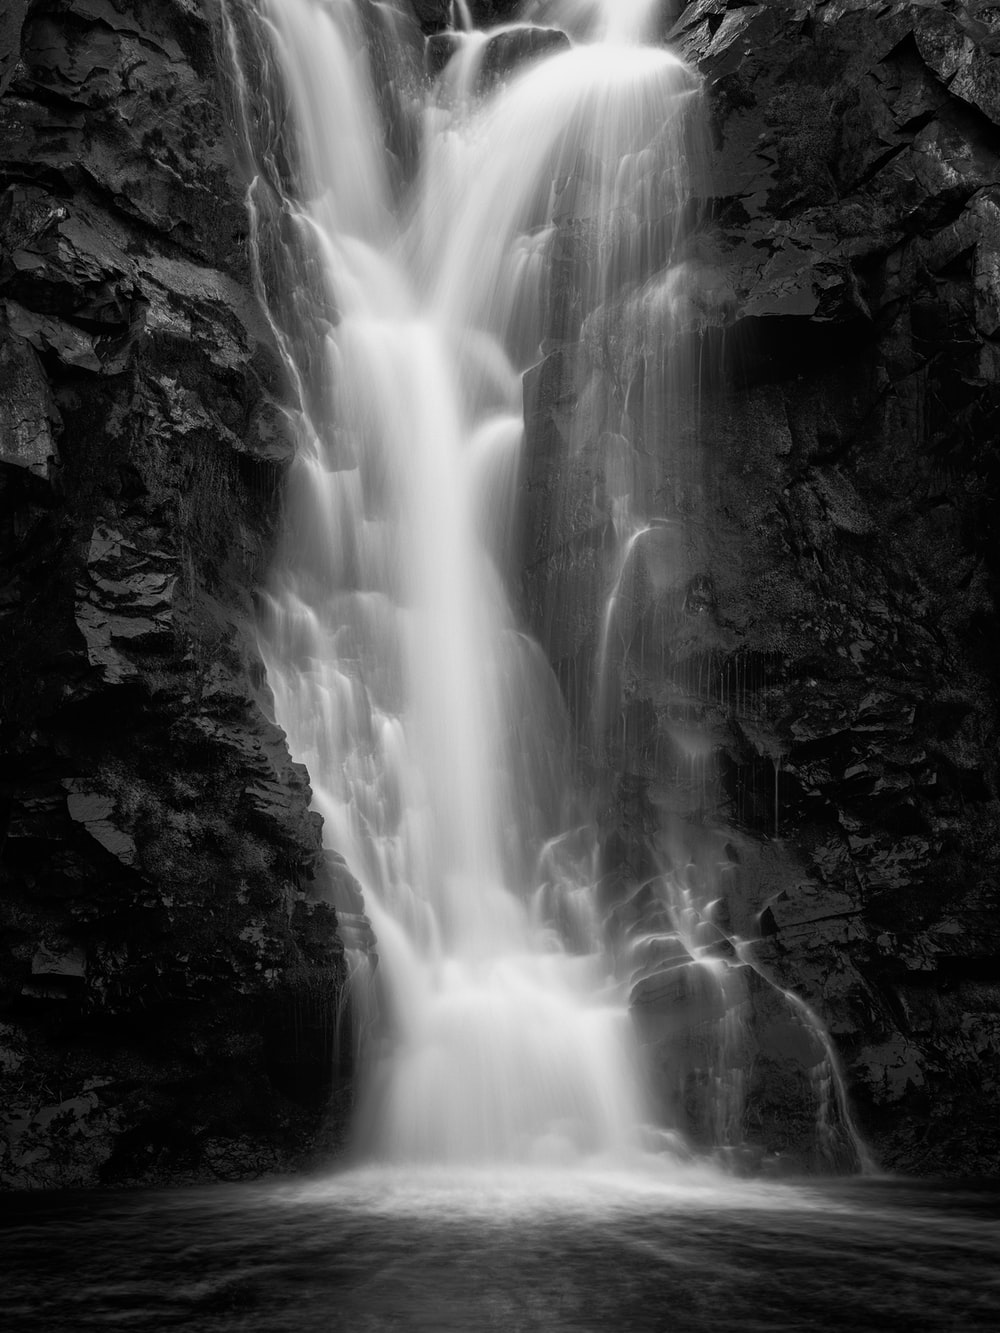 grayscale photo of waterfalls during daytime